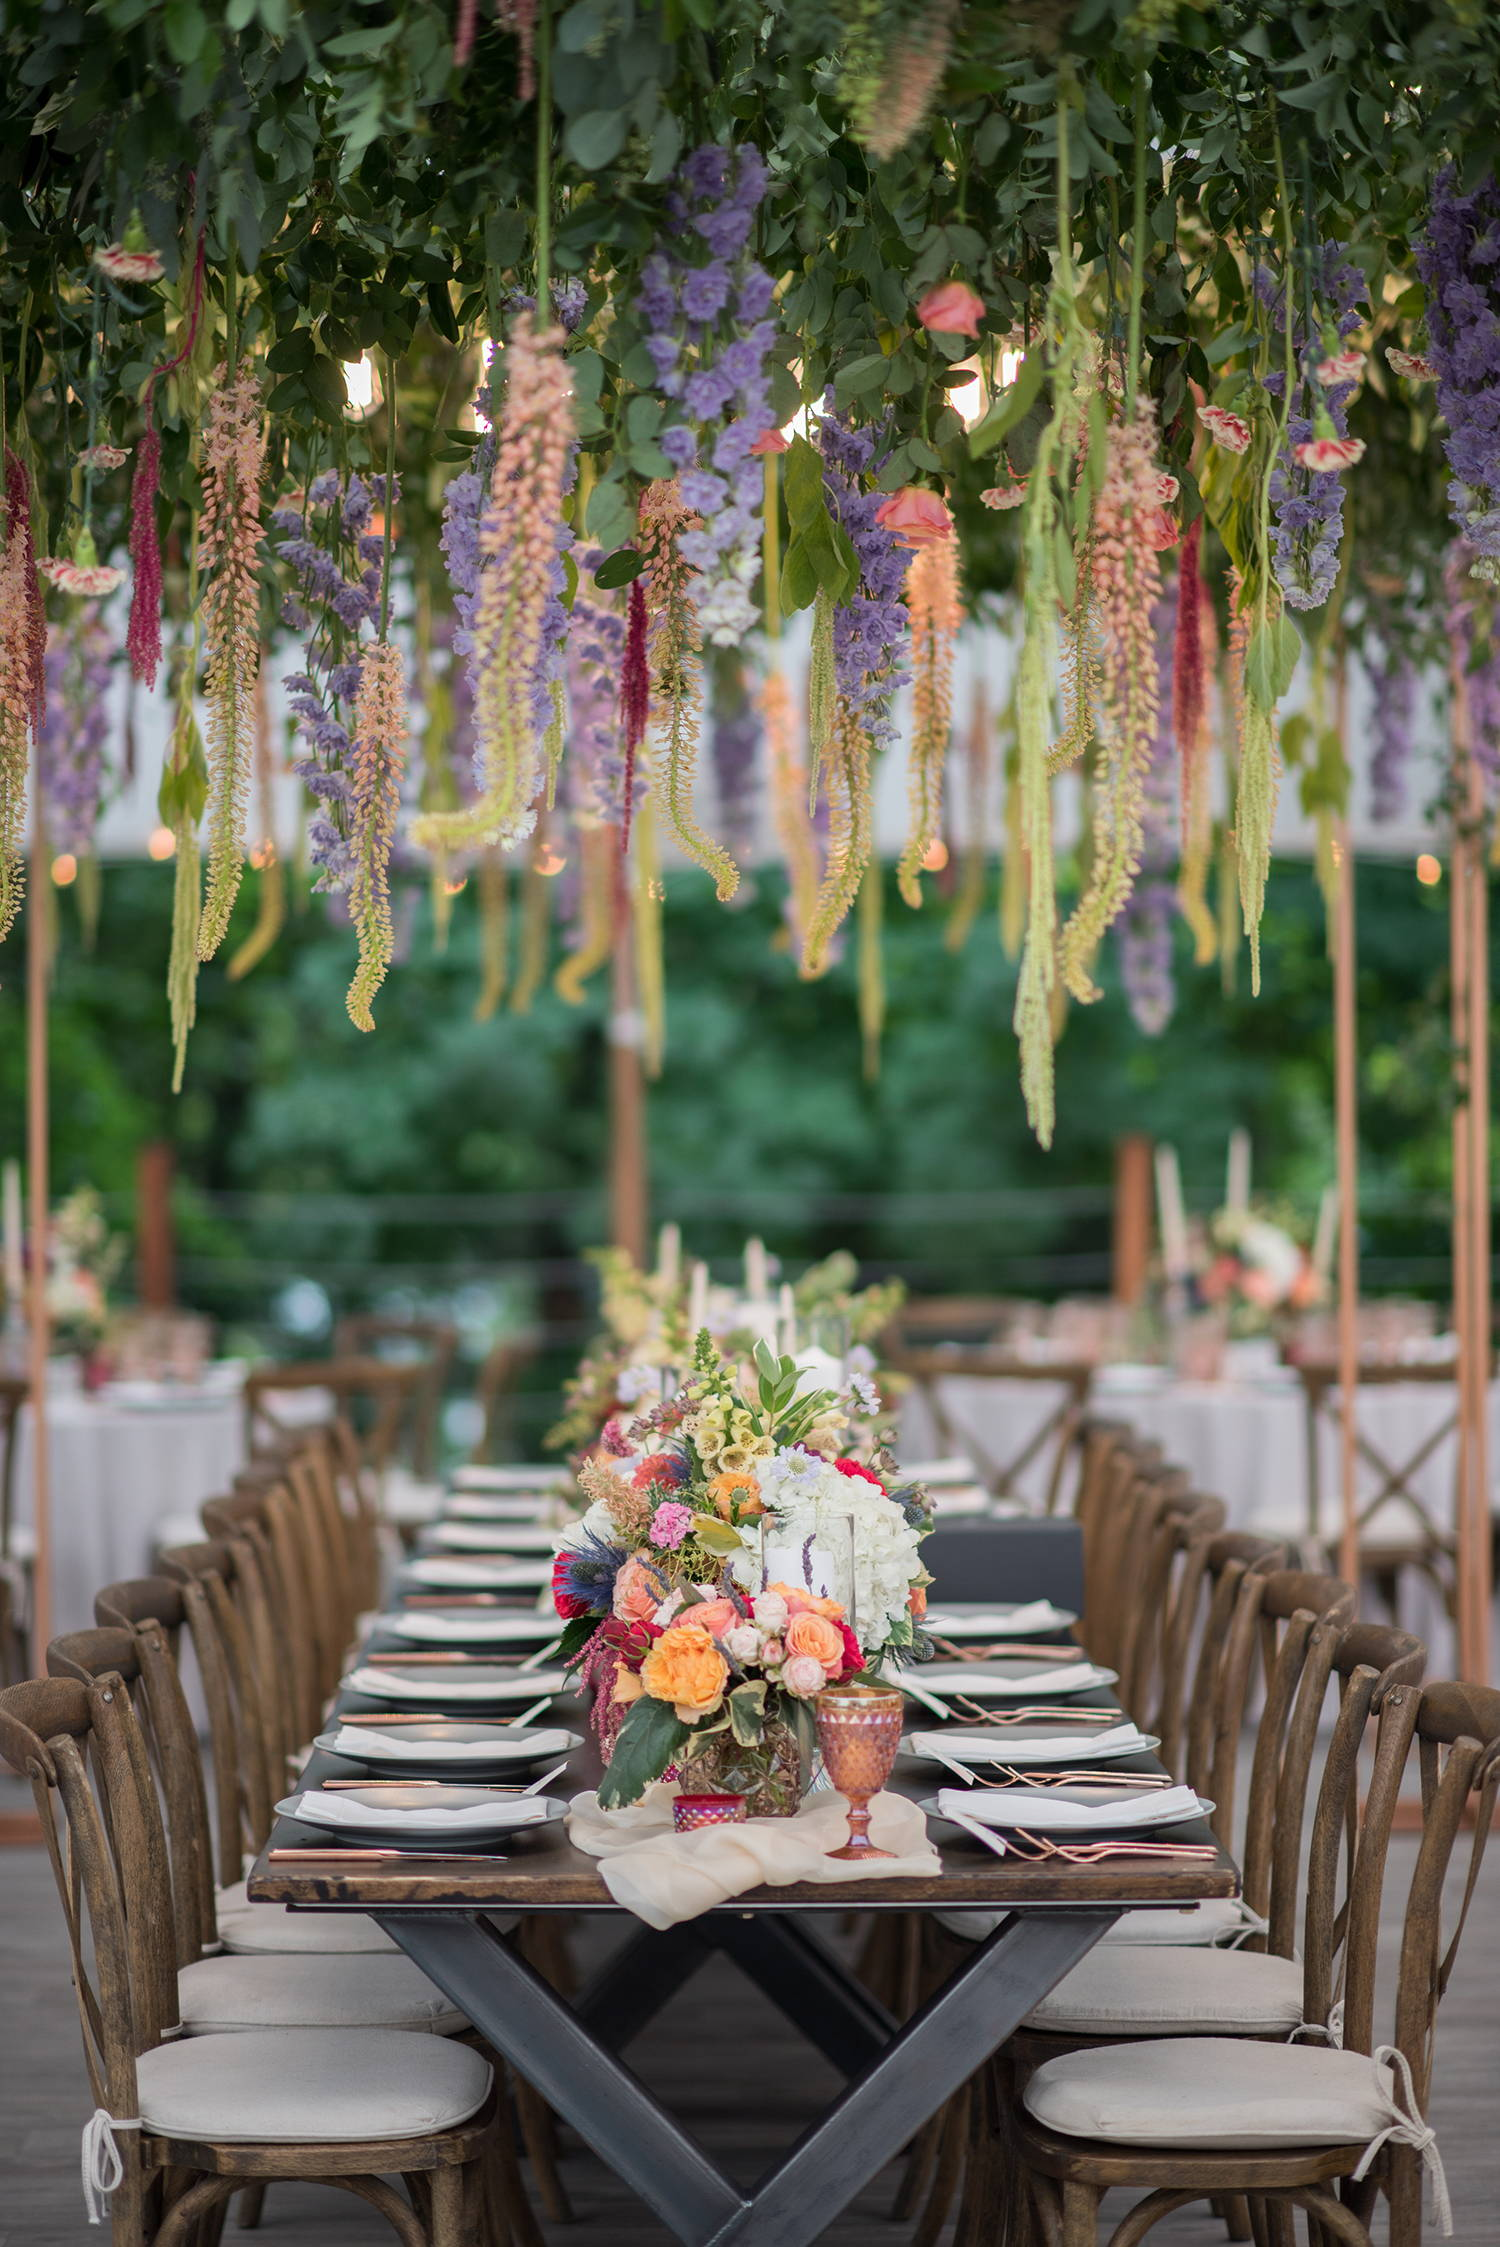 Whimsical Tented Pittsford wedding | Pittsford Florist